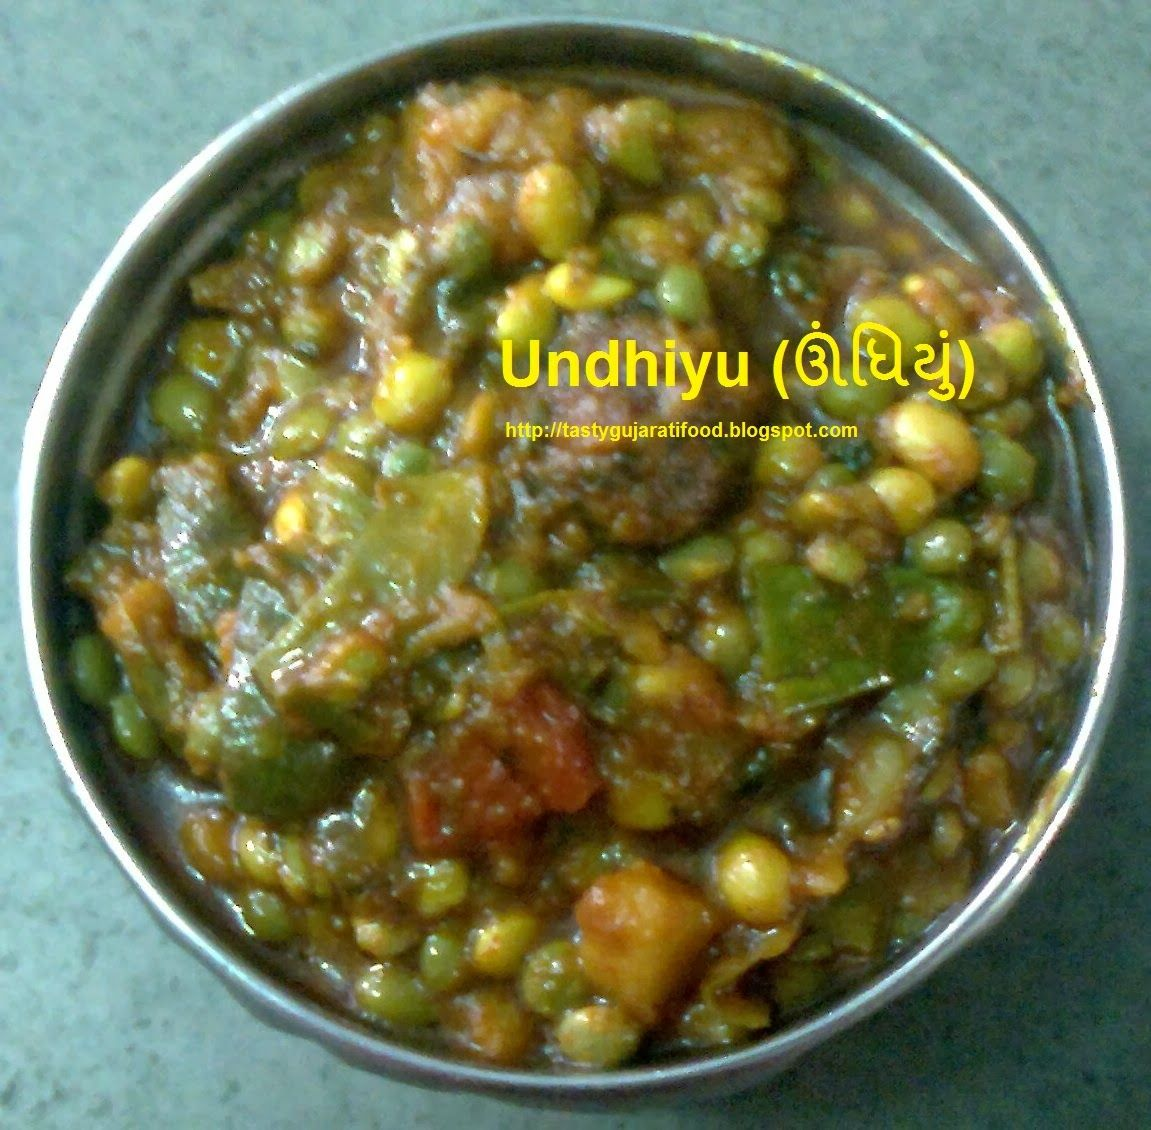 Enjoy spicy undhiyu recipe in gujarati language by tasty gujarati enjoy spicy undhiyu recipe in gujarati language by tasty gujarati food recipes blog celebrate uttarayan forumfinder Gallery